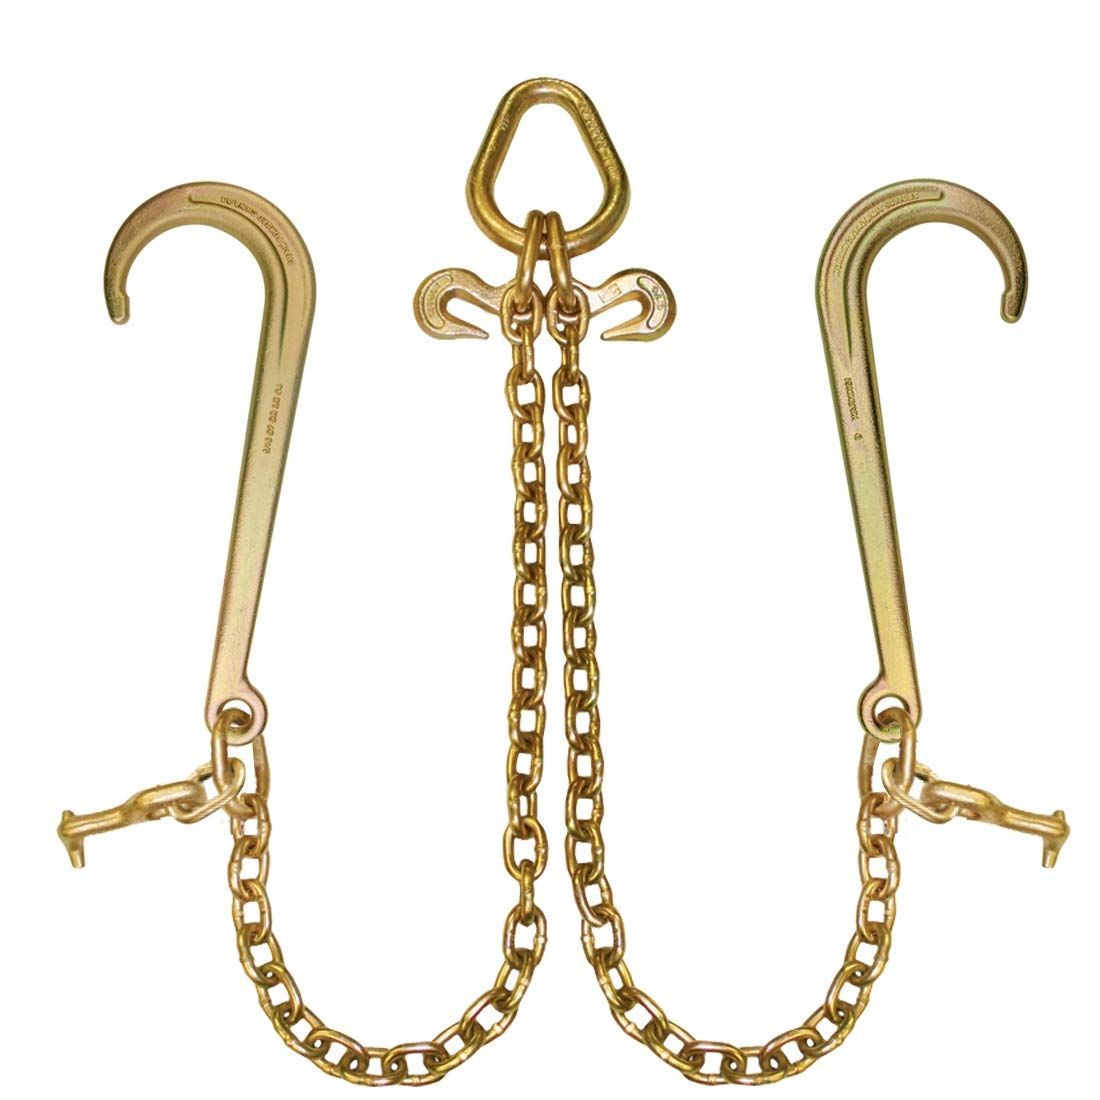 Johnstown Grade 70 Towing Chain Bridle with 15'' J-Hooks and Alloy T-Hooks - 4700 lbs. SWL (47'')